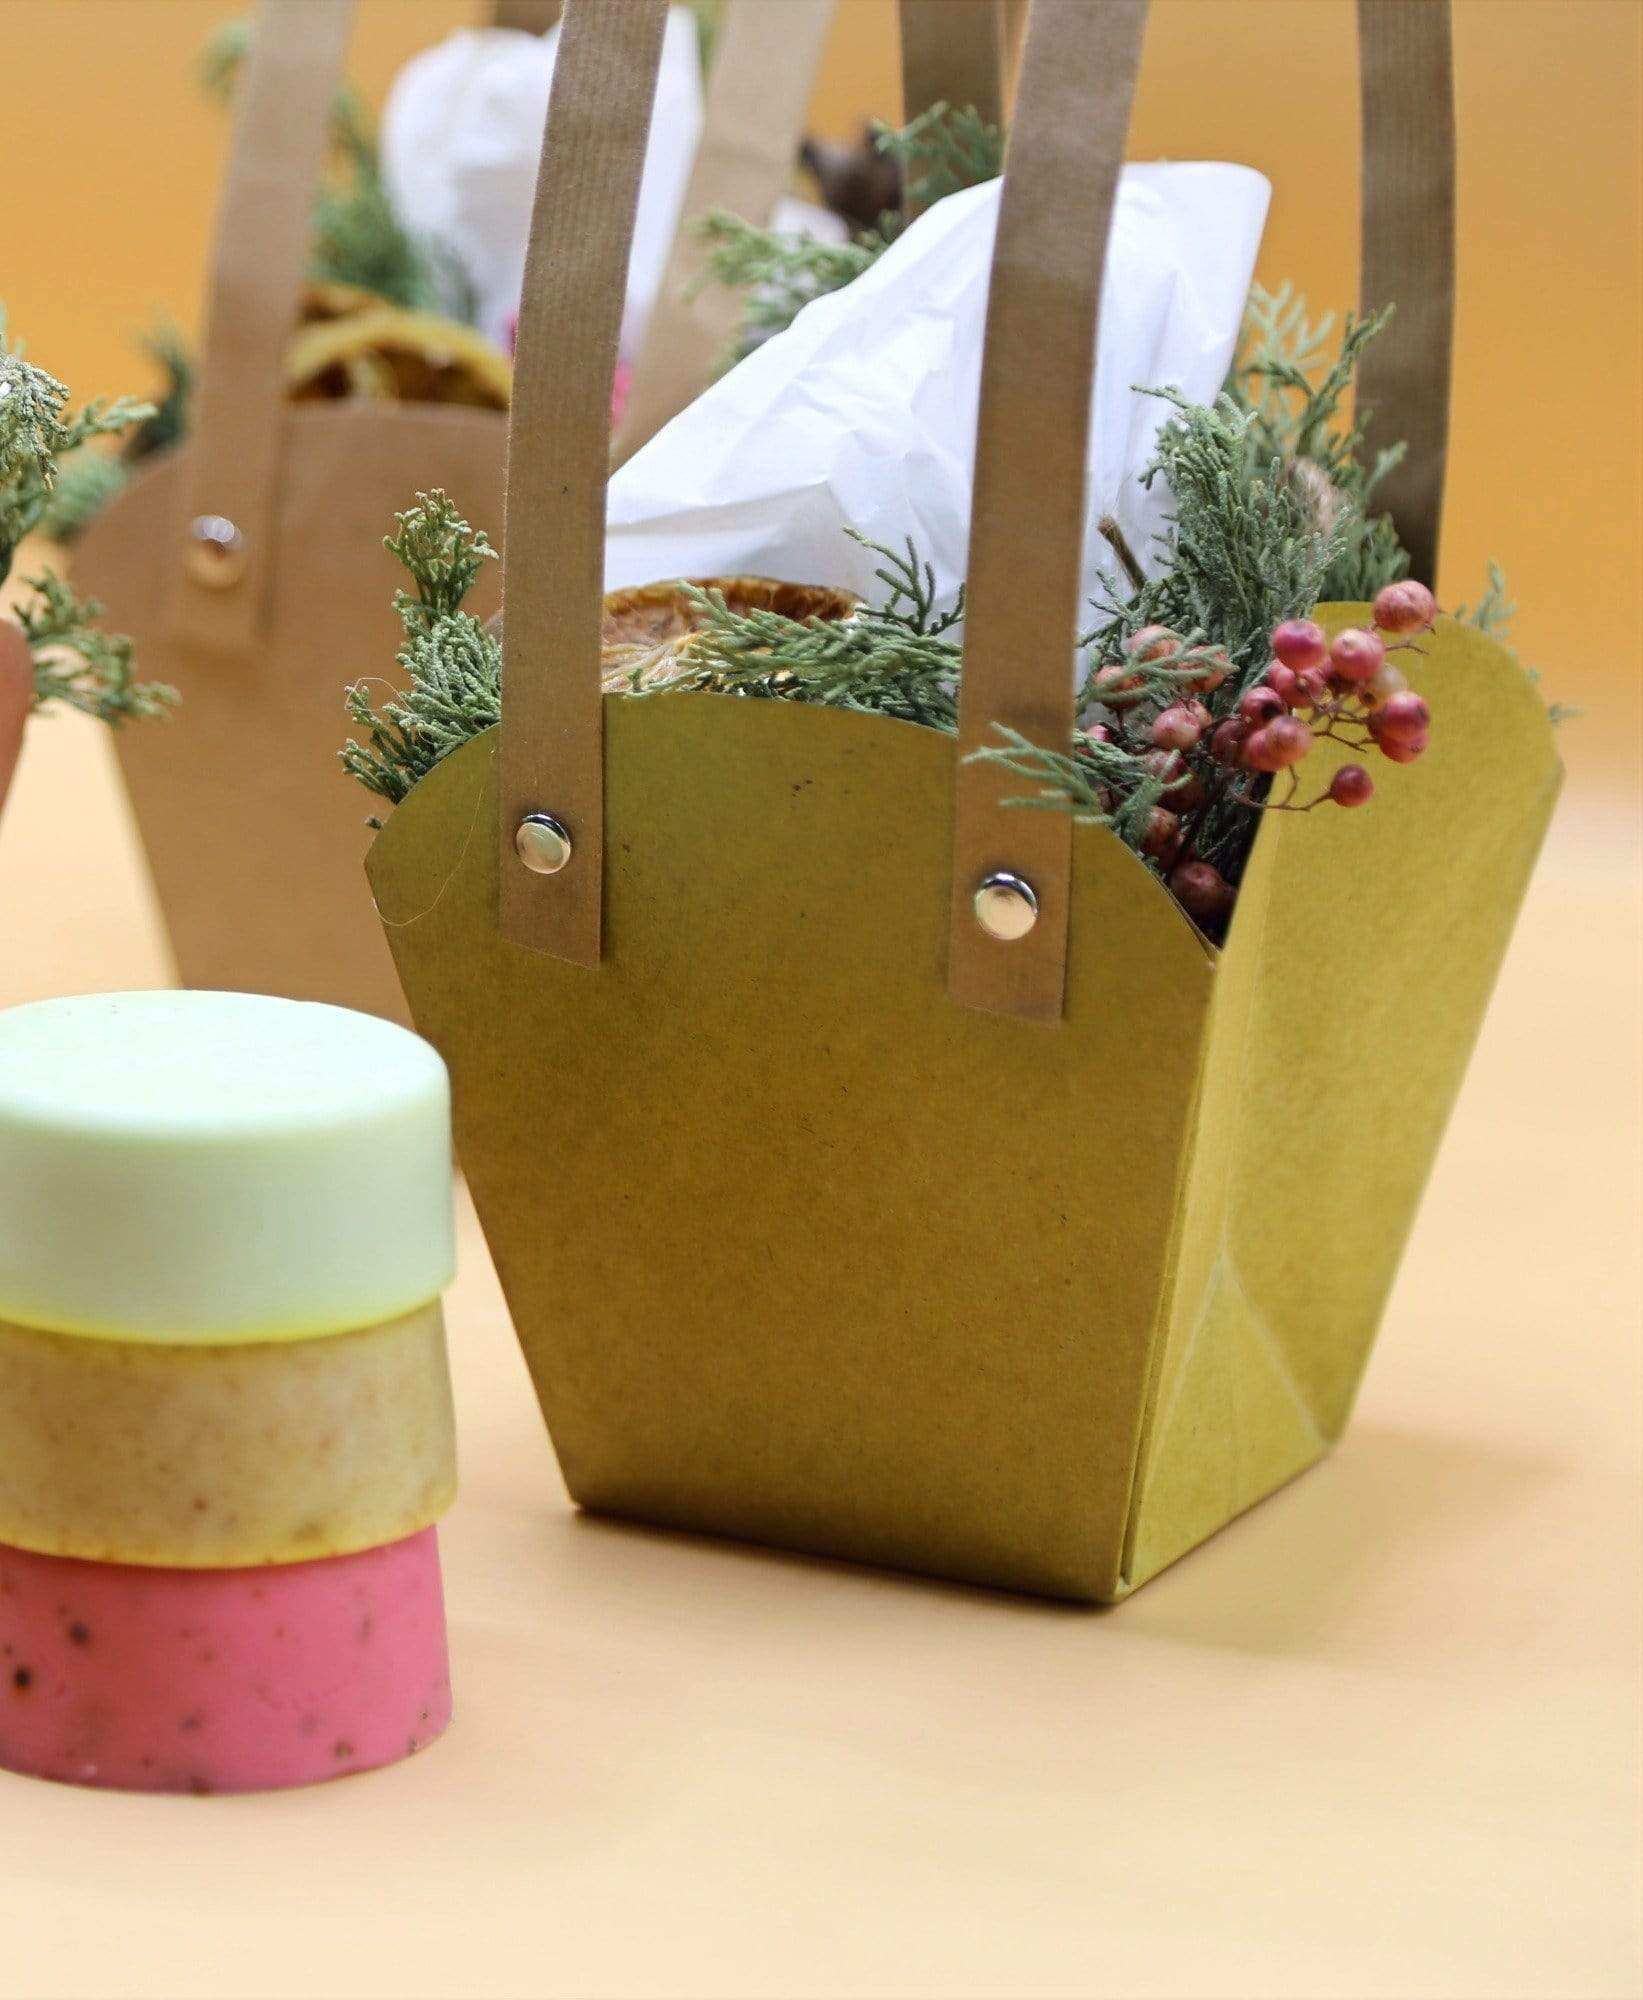 Shams El Balad Wellness Trio Soap Gift Bag